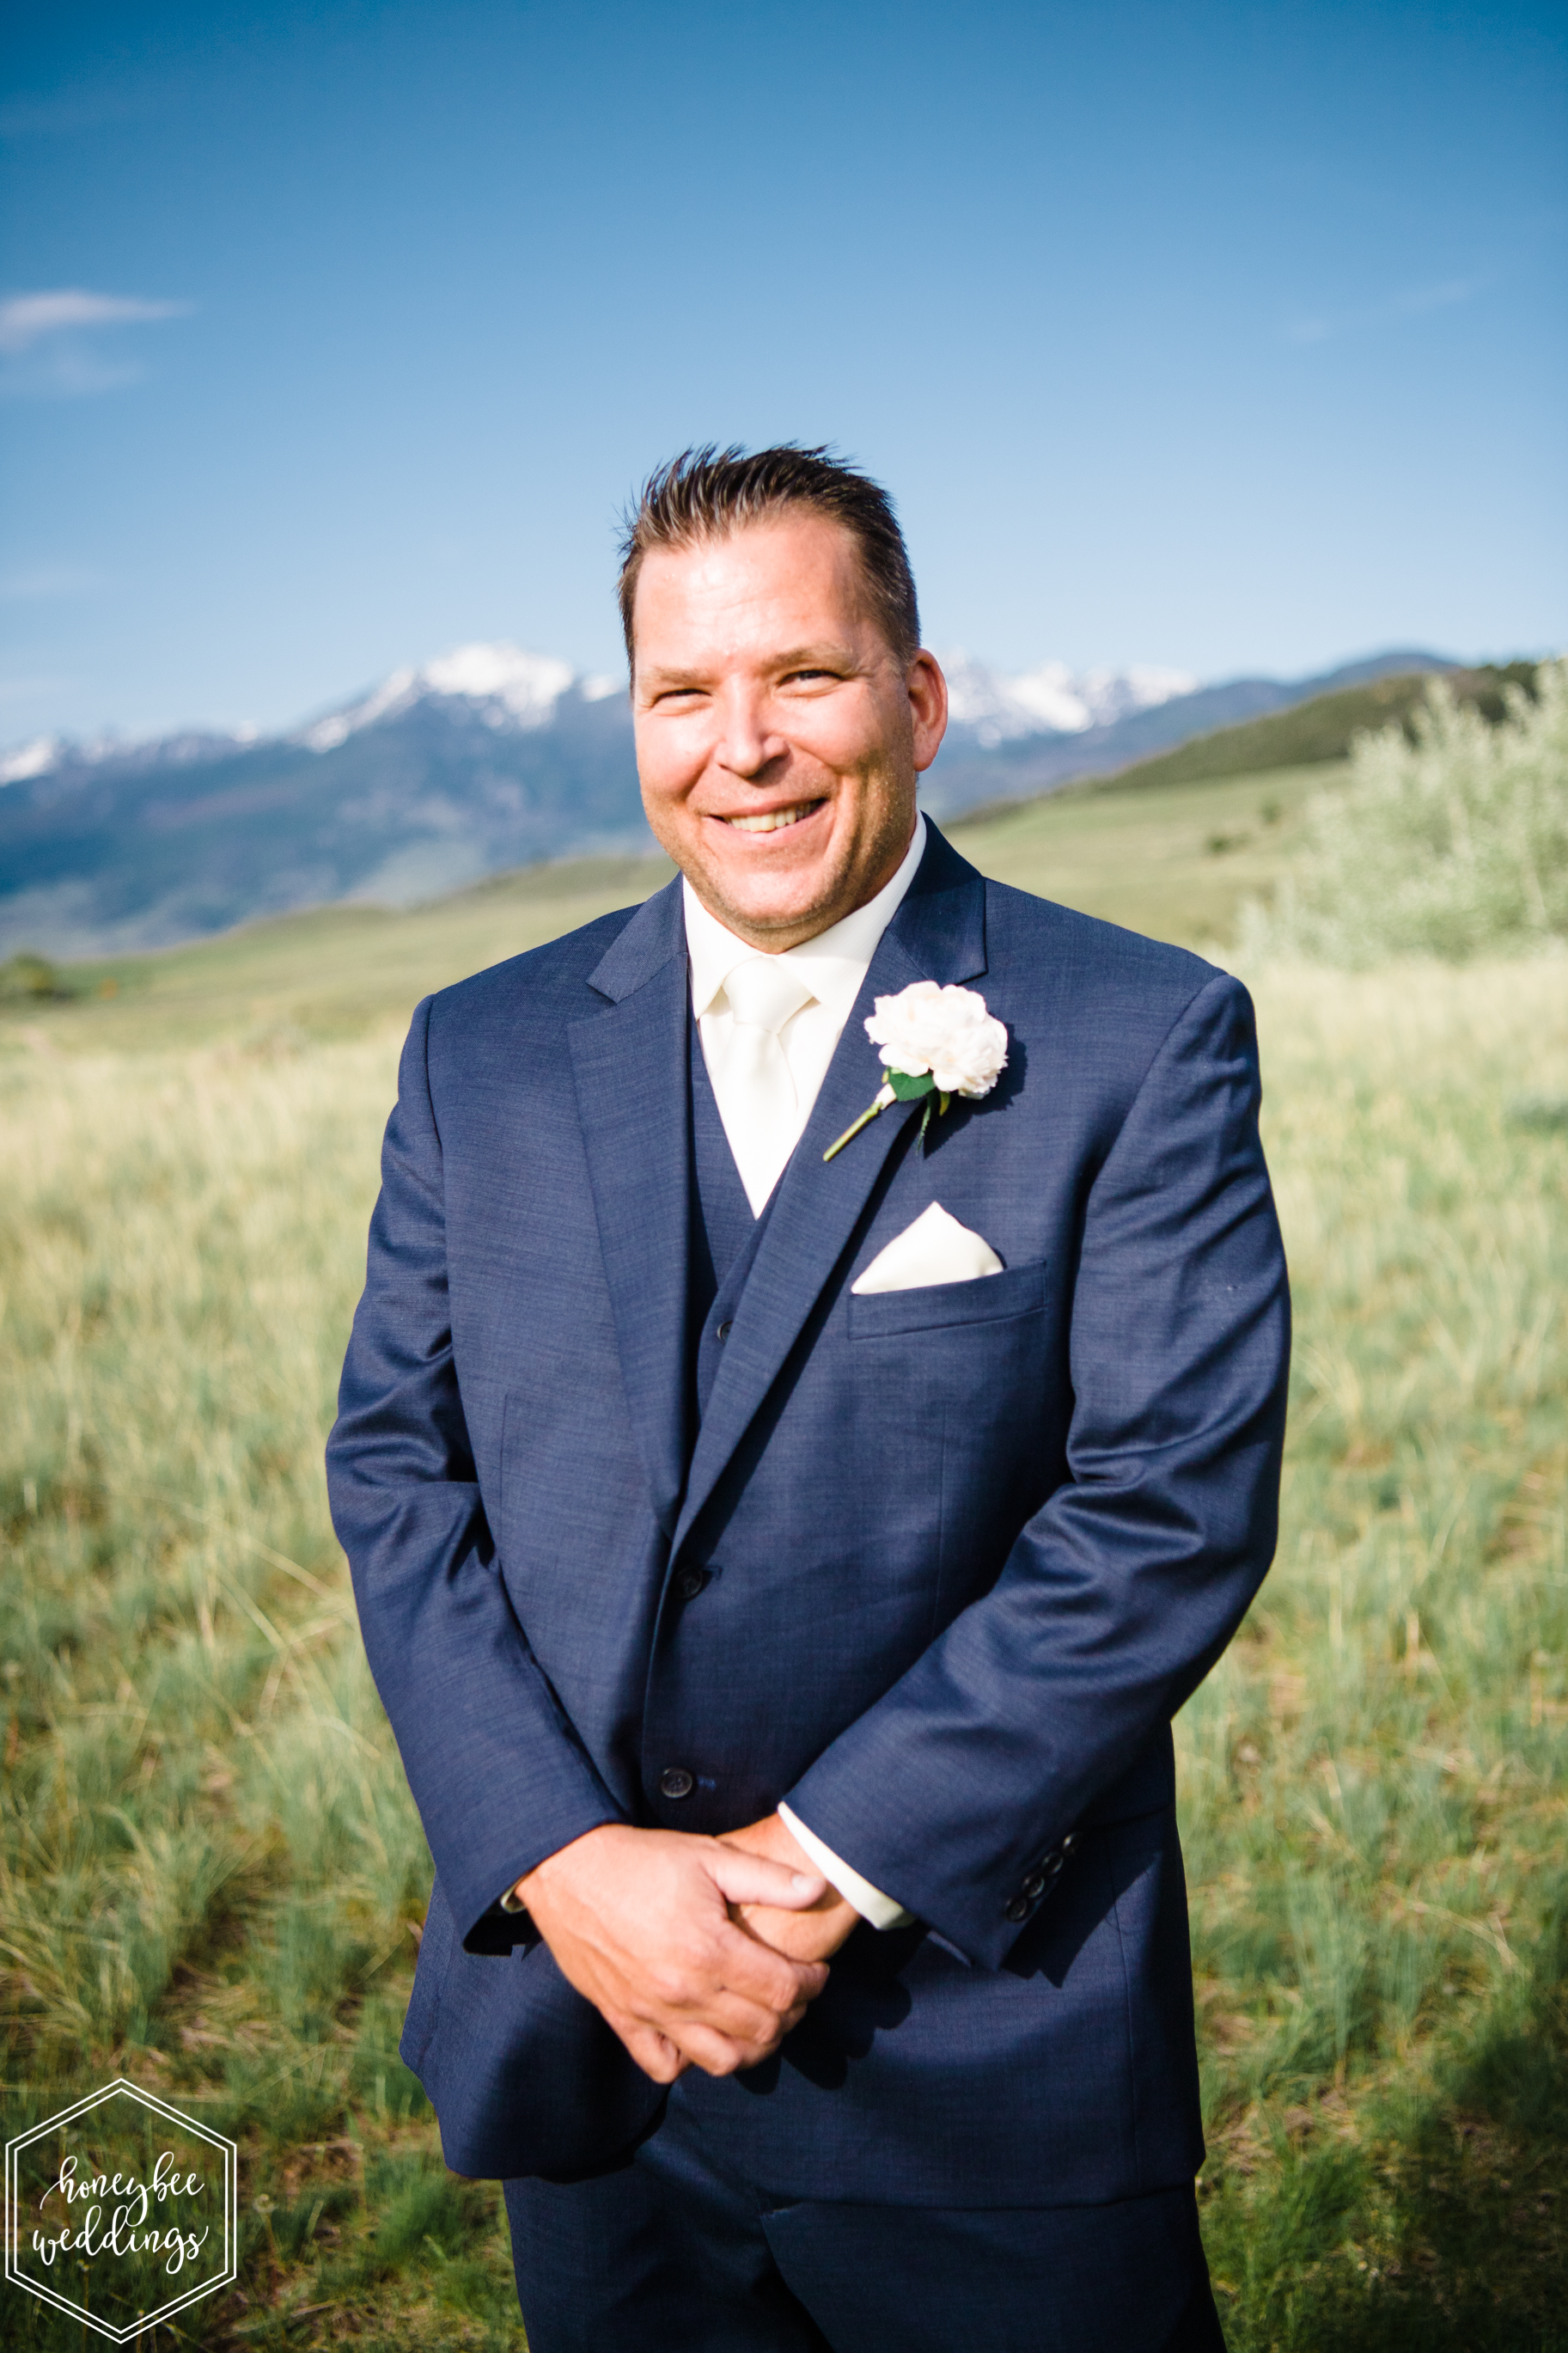 034Montana wedding photographer videographer_Chico hot springs wedding_Honeybee Weddings_Claudia & Bill_June 03, 2019-626.jpg